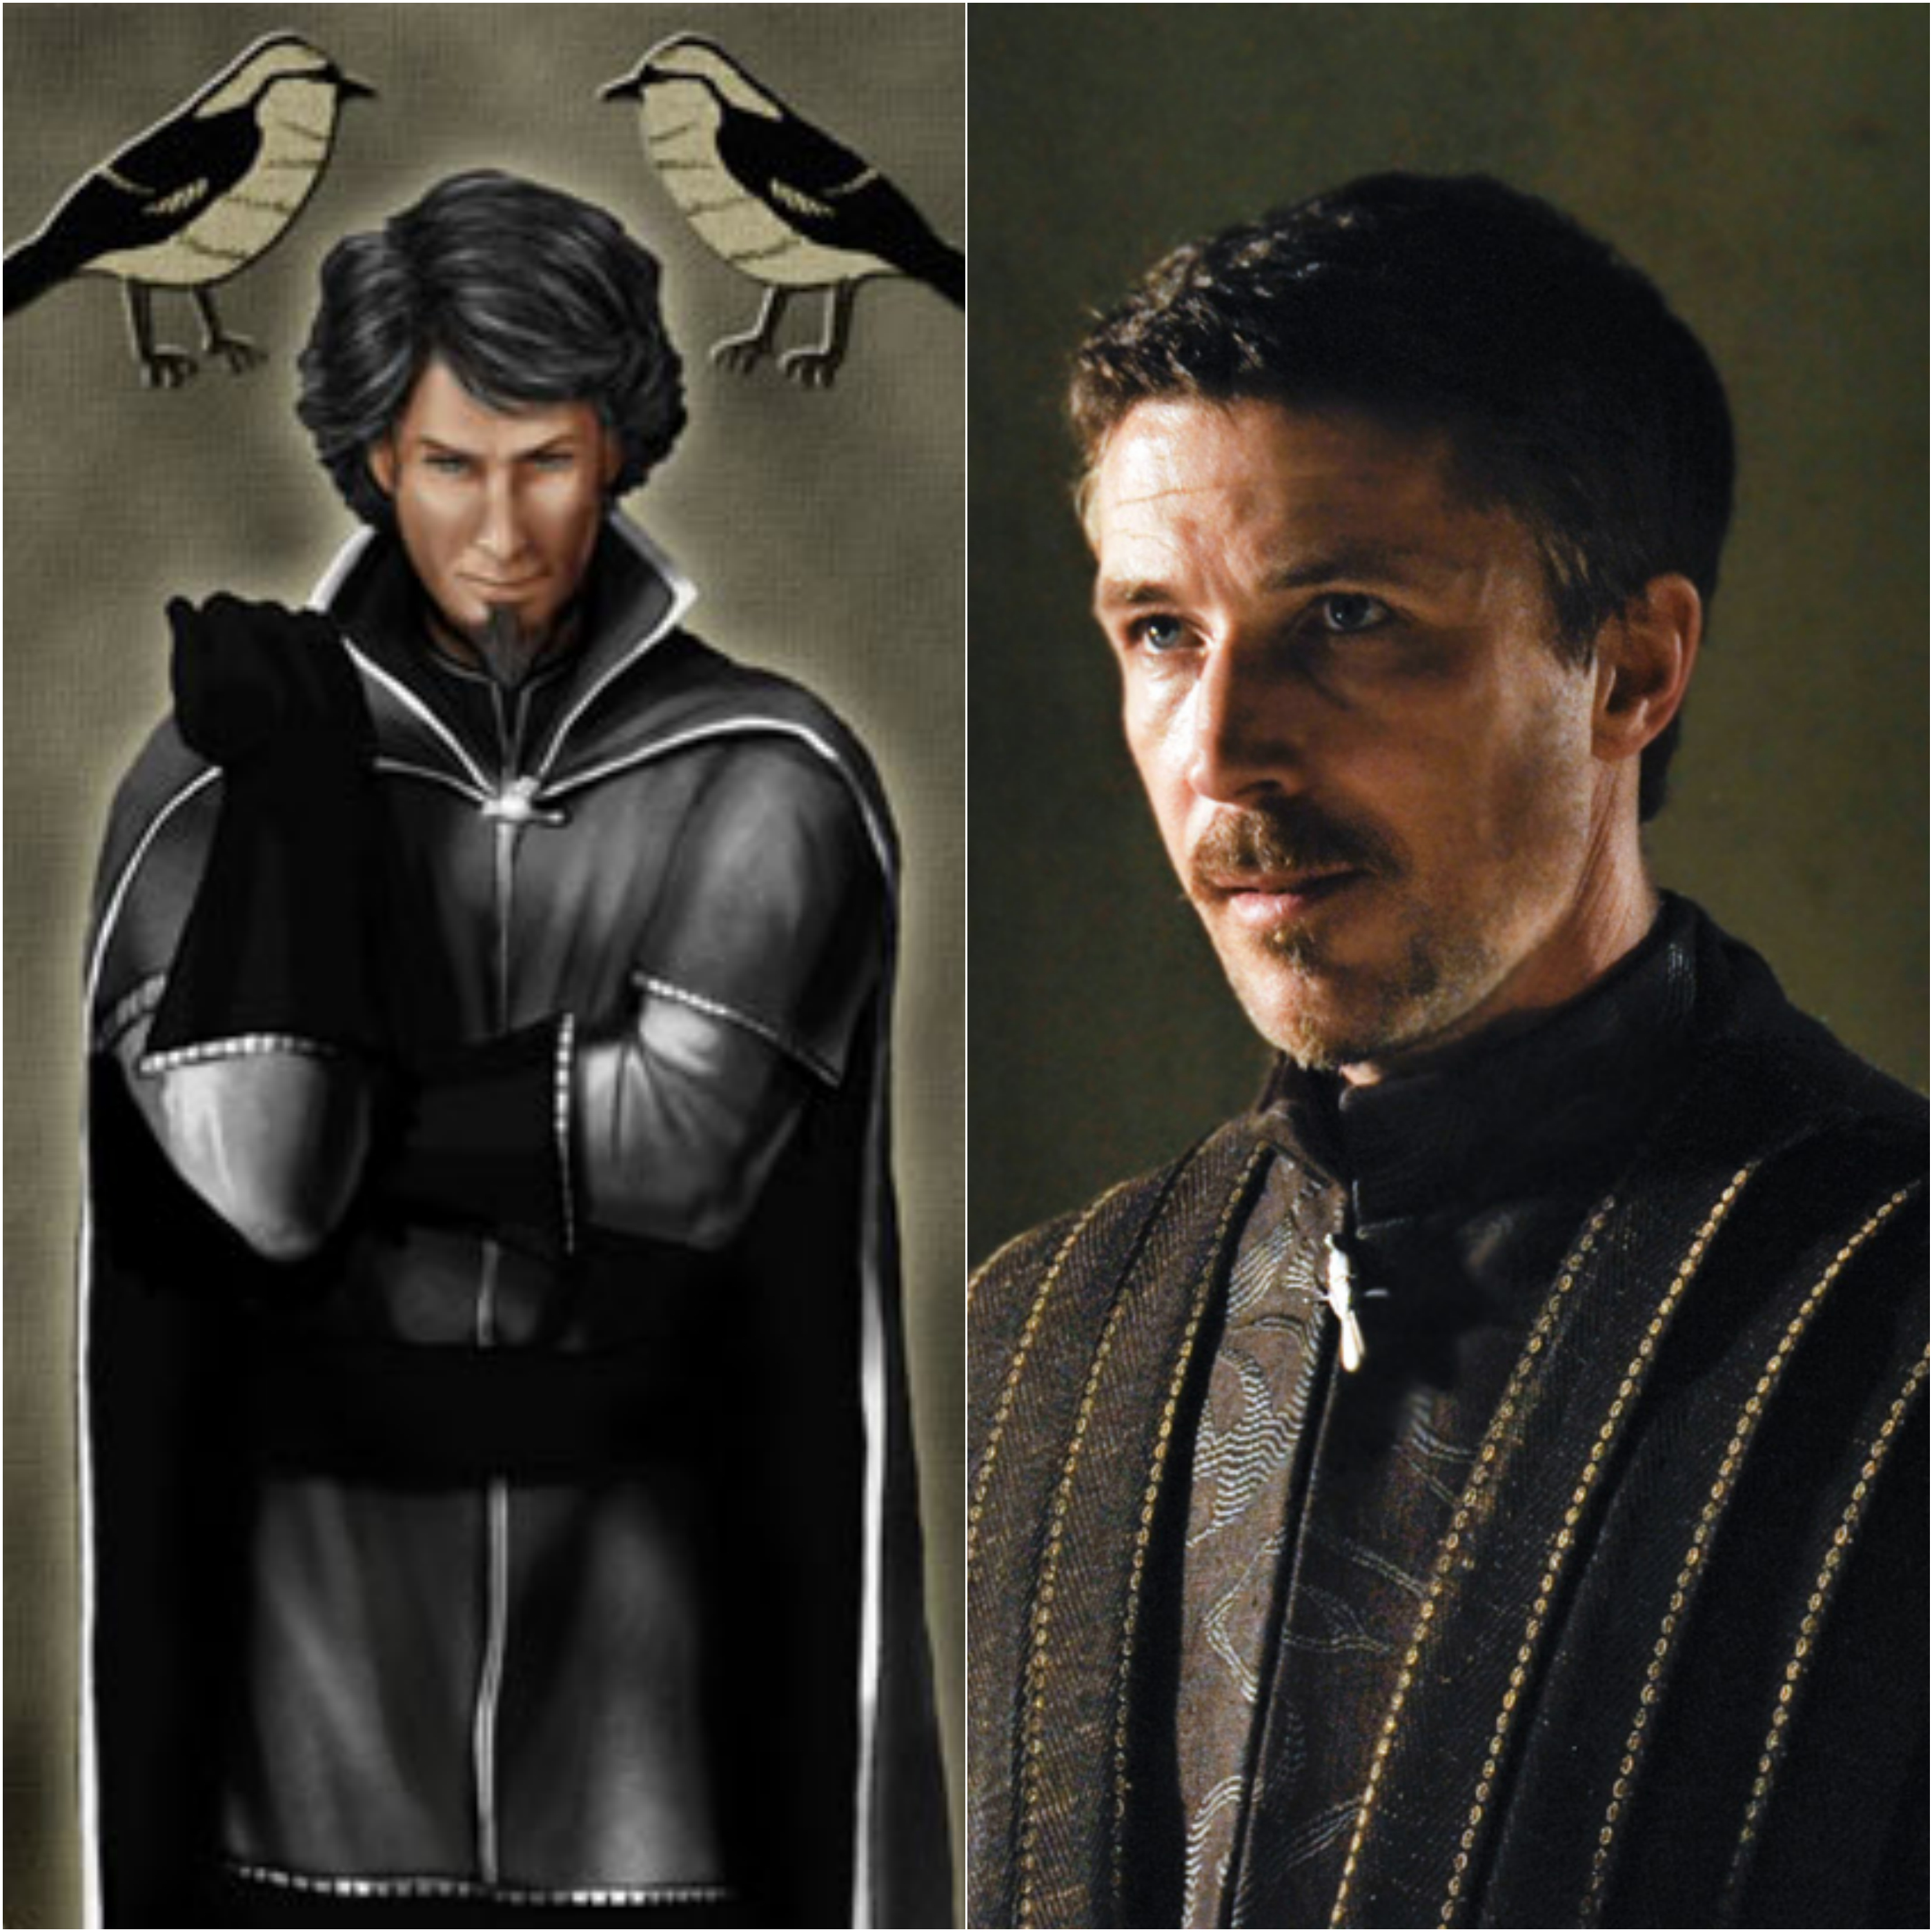 Petyr-Baelish-lord-petyr-baelish-23395522-1920-1080_Fotor_Collage